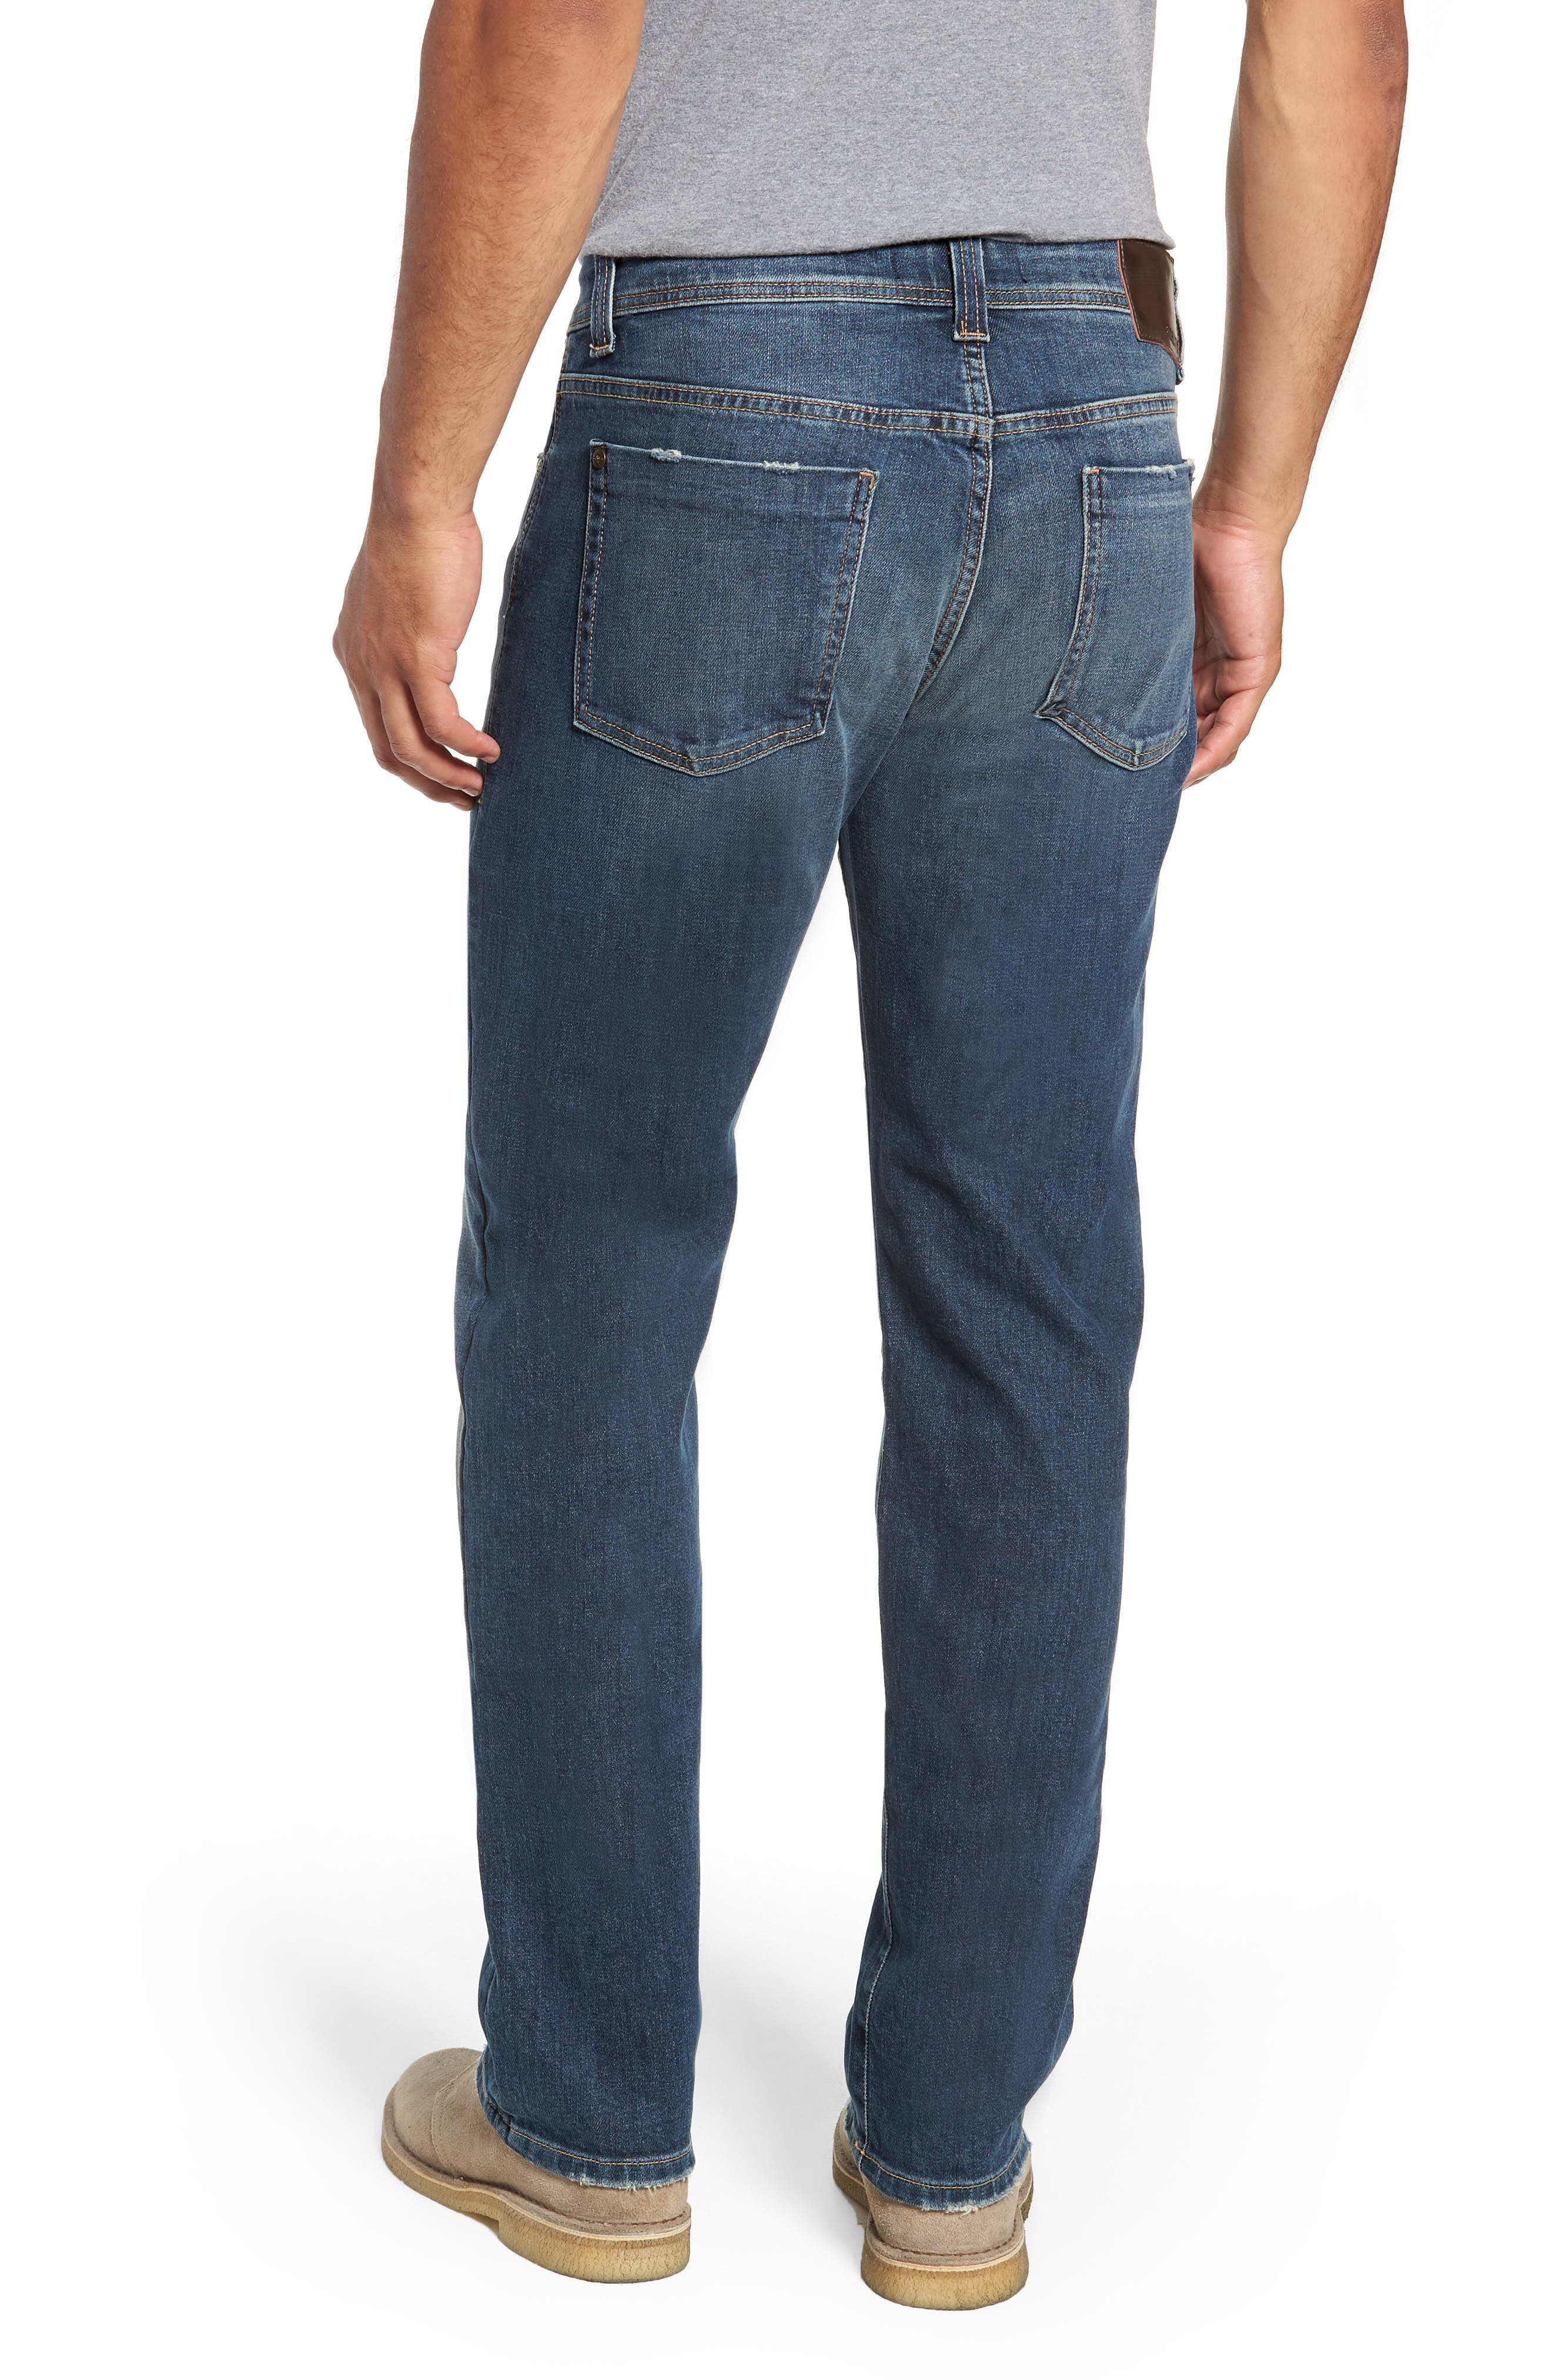 50-11 Relaxed Fit Jeans,                             Alternate thumbnail 2, color,                             GTO VINTAGE